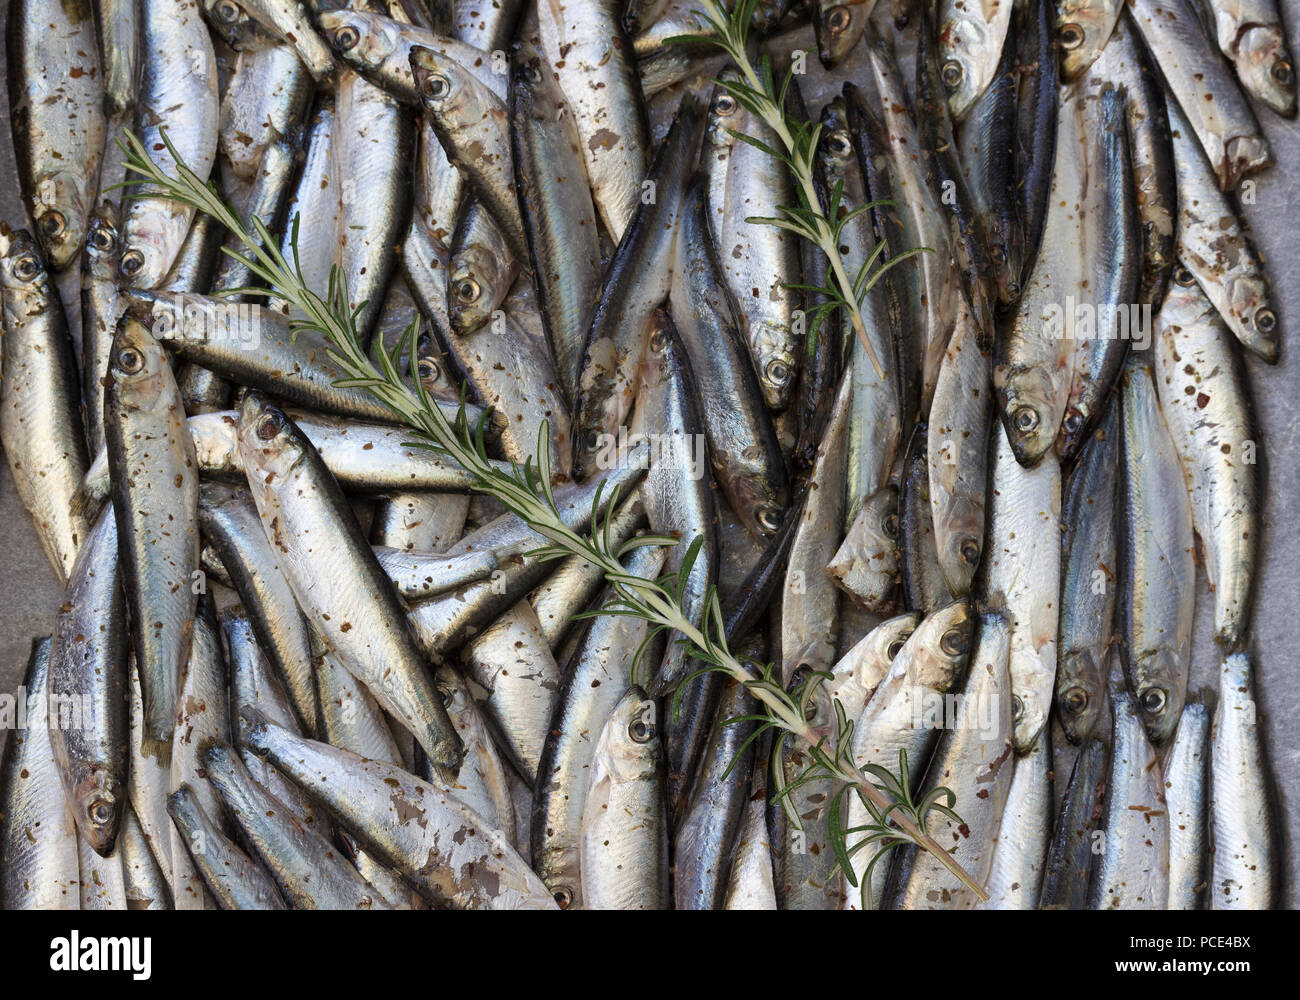 Sardines, seasoned and ready for oven - Stock Image